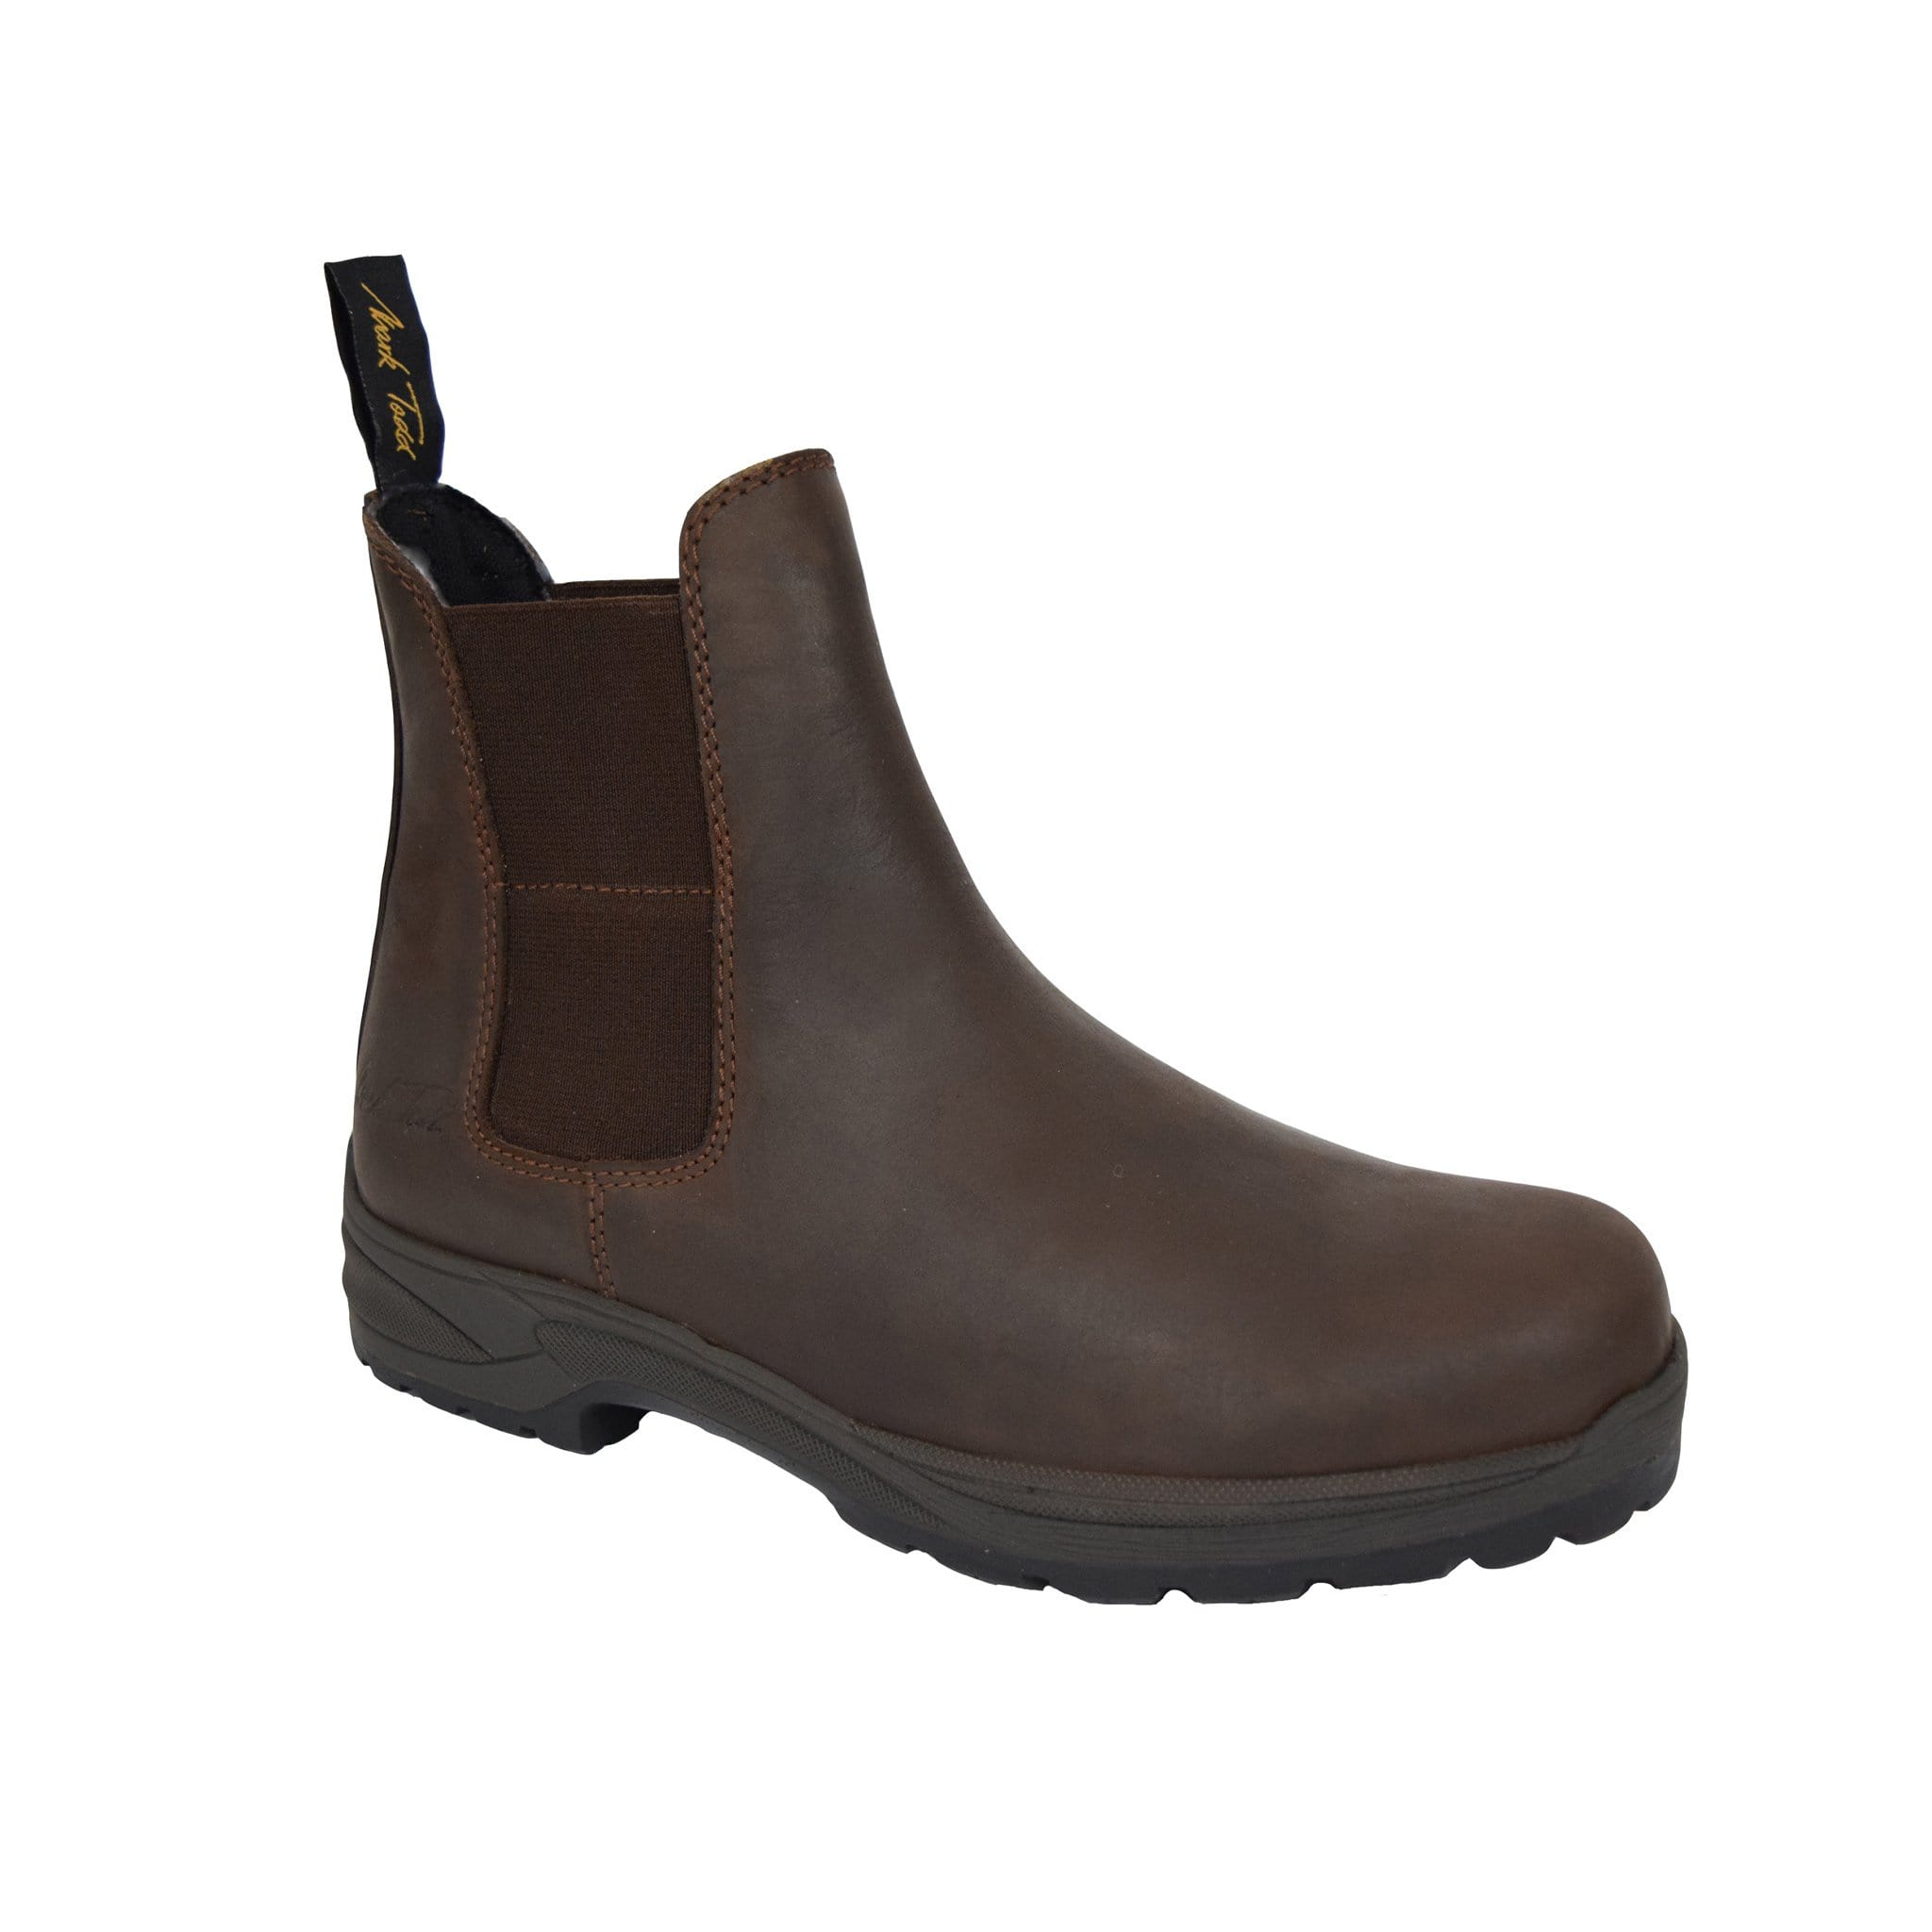 Mark Todd Kiwi Waterproof Jodhpur Boot Studio 139573